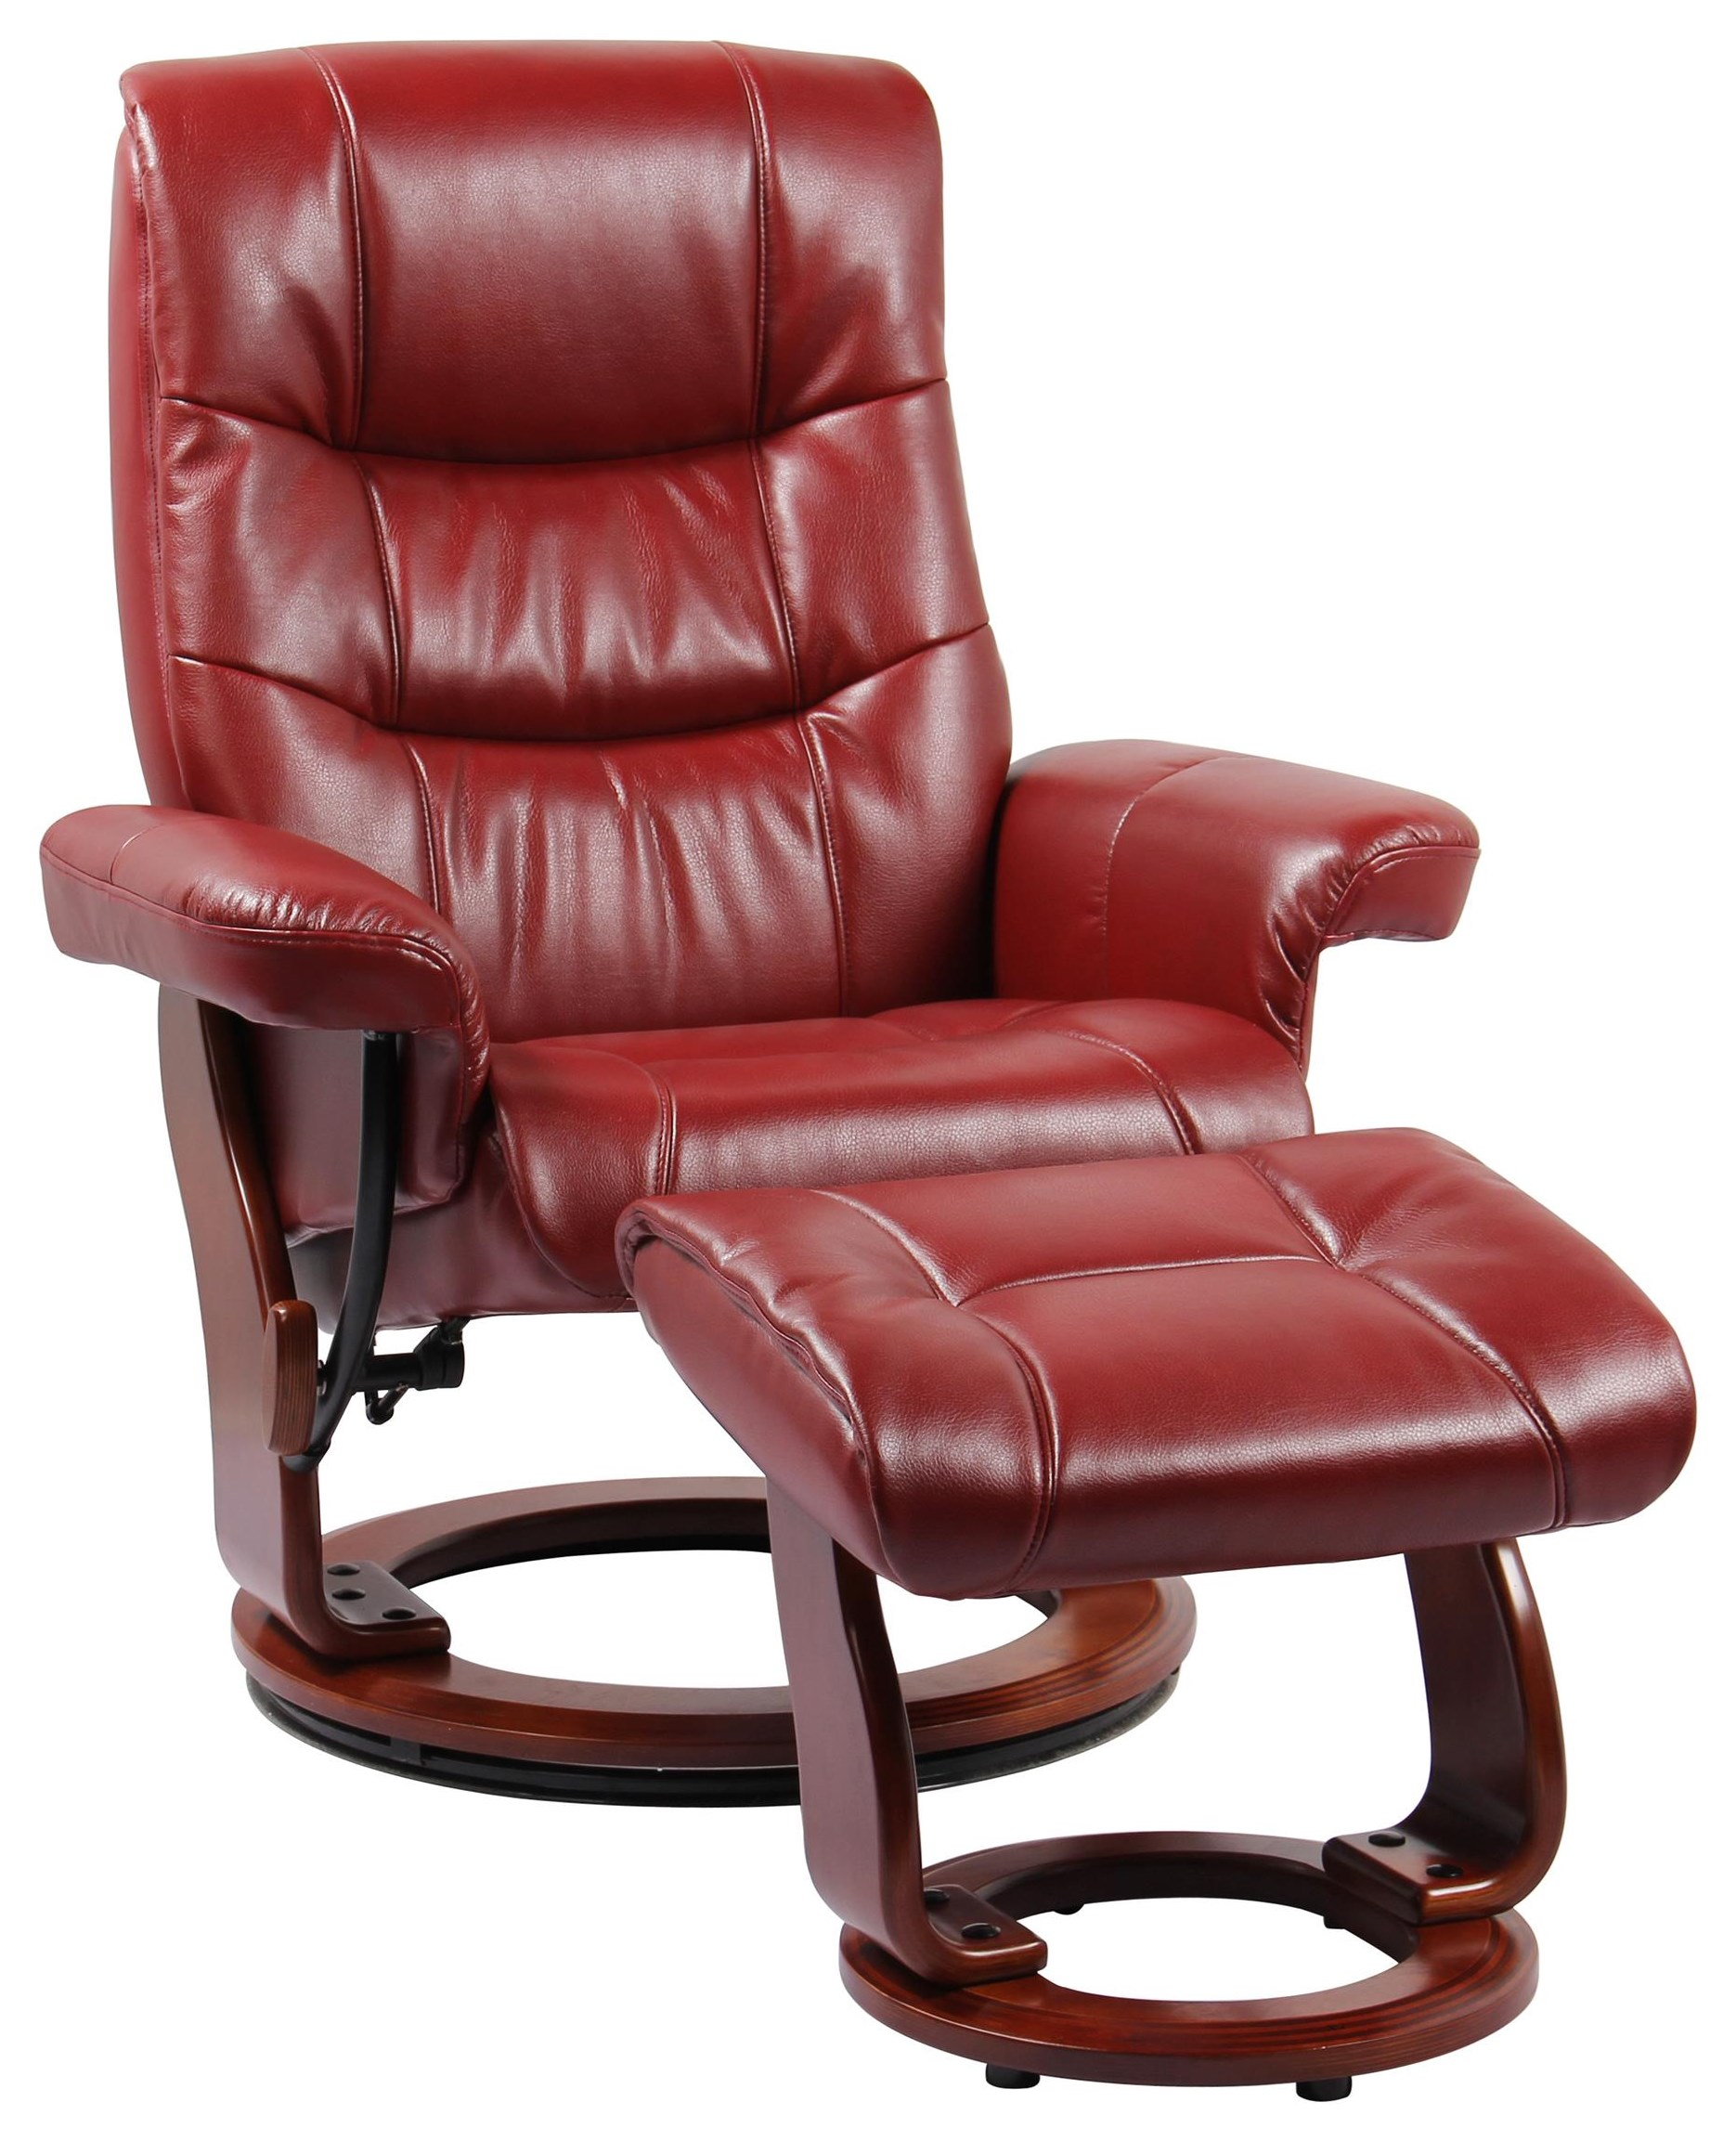 stress free chair clinical care geri recliner benchmaster rosa ii 7583kred red otto